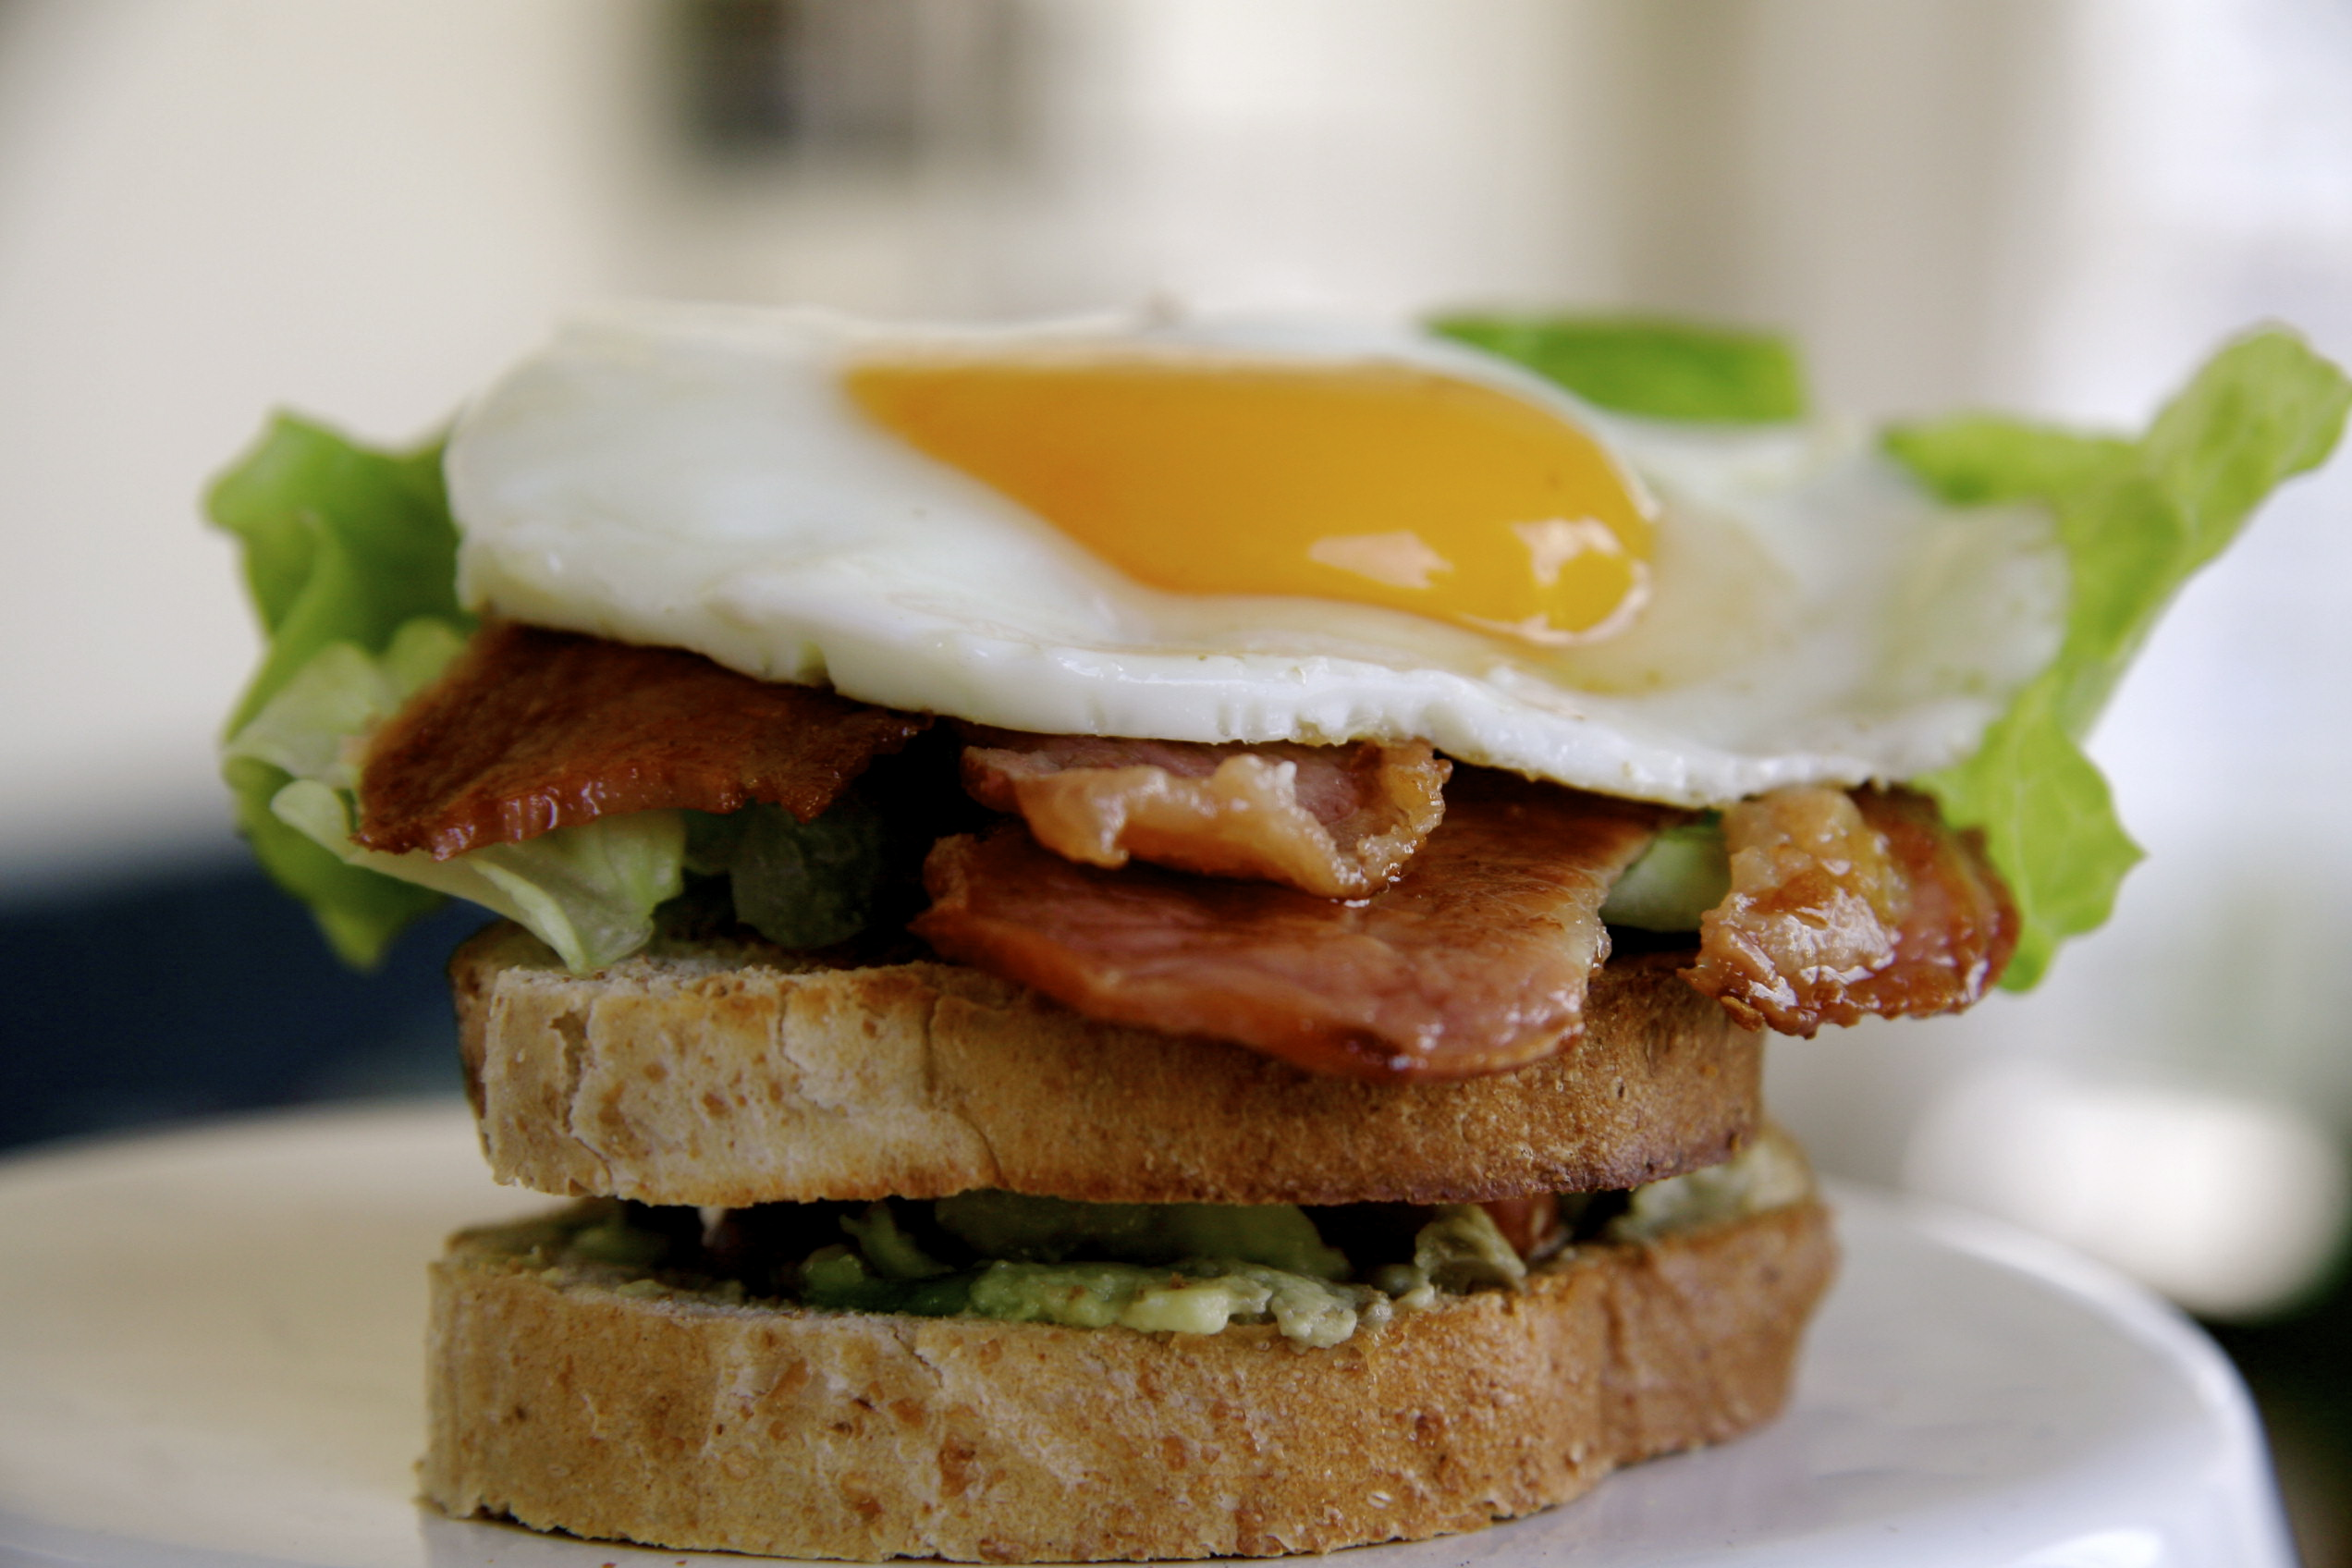 Bacon, Lettuce, Tomato, Avocado and Fried Egg Sandwich